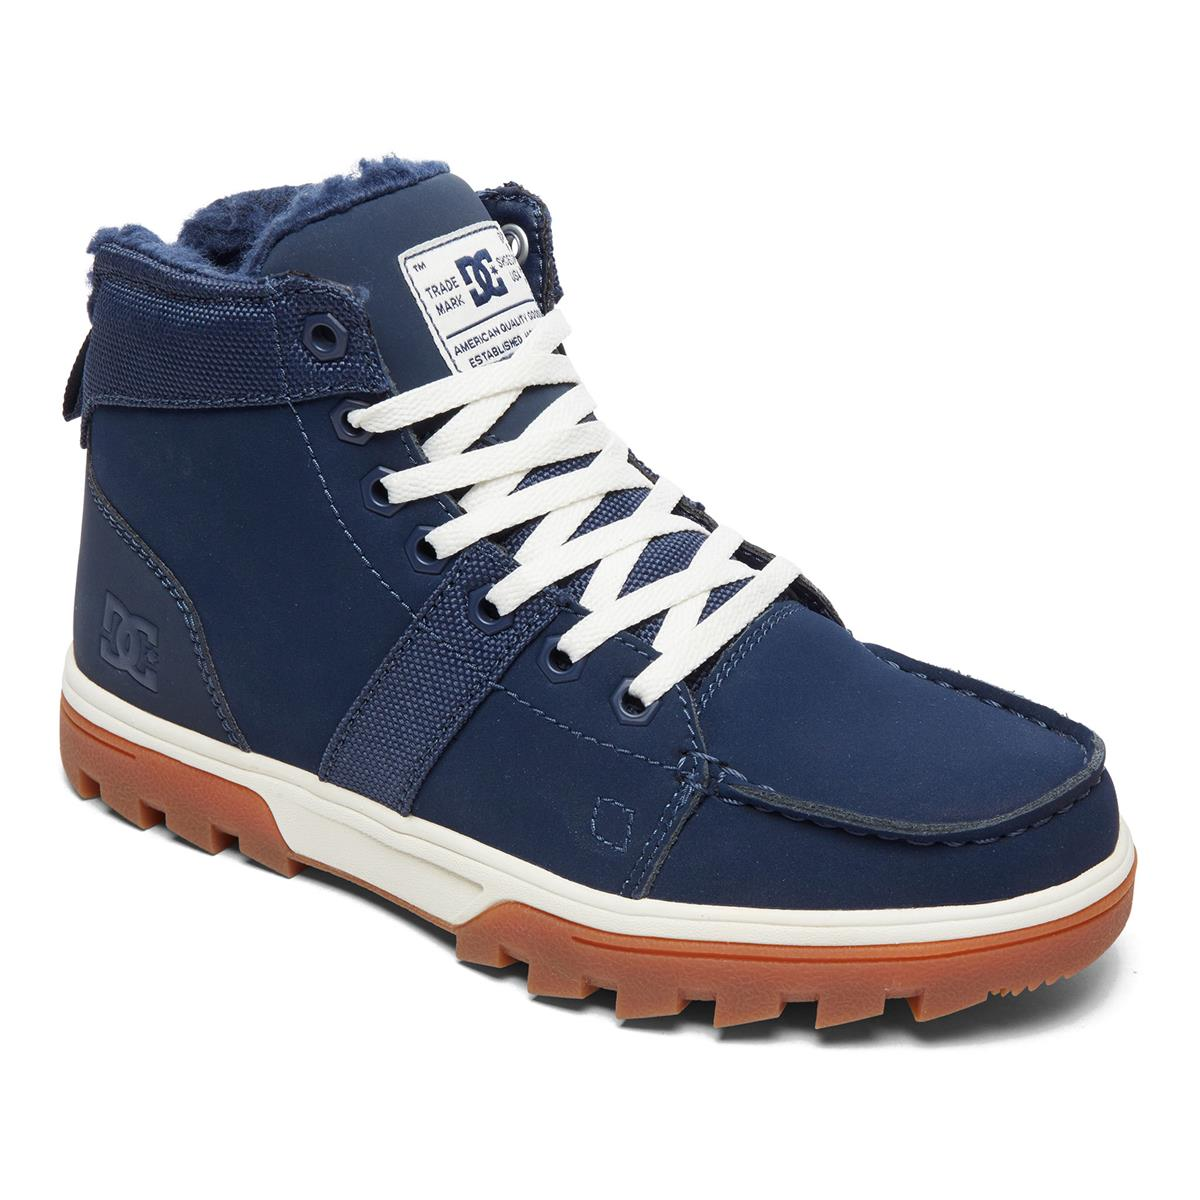 best service faa7f 78df1 DC Girls Winter Shoes Woodland Navy/Navy